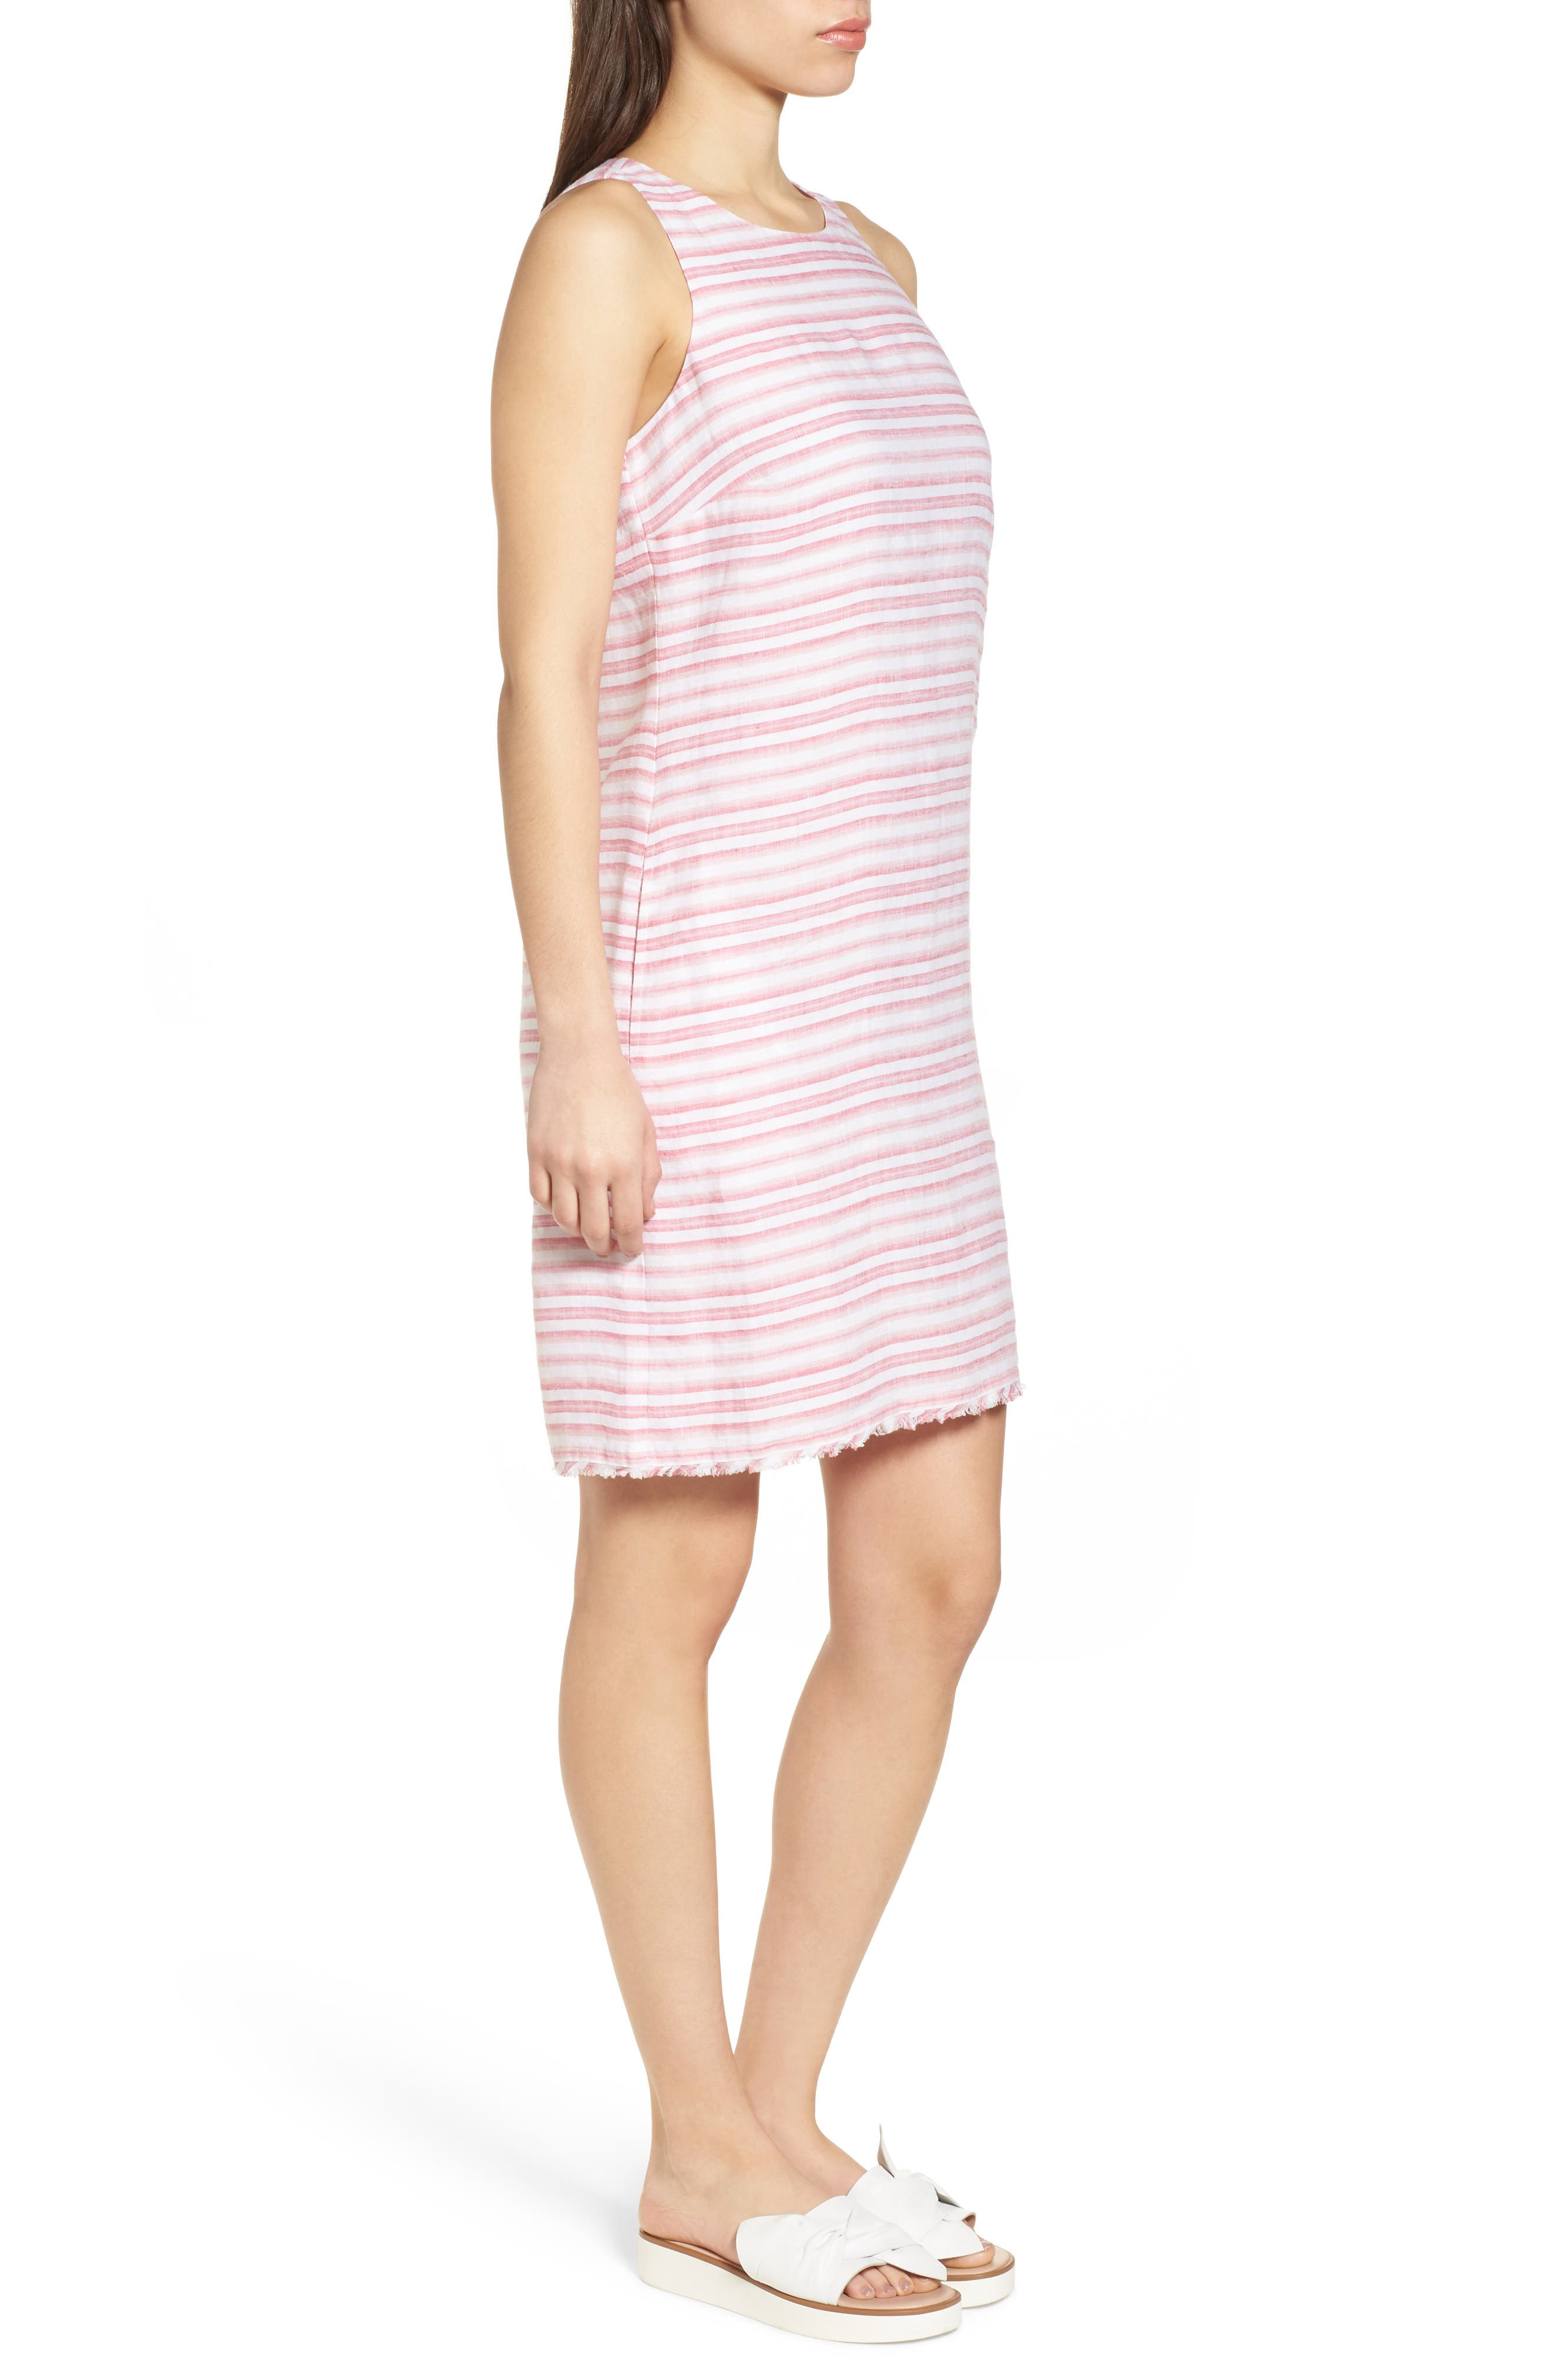 Bella Hermosa Linen Shift Dress,                             Alternate thumbnail 3, color,                             French Rose